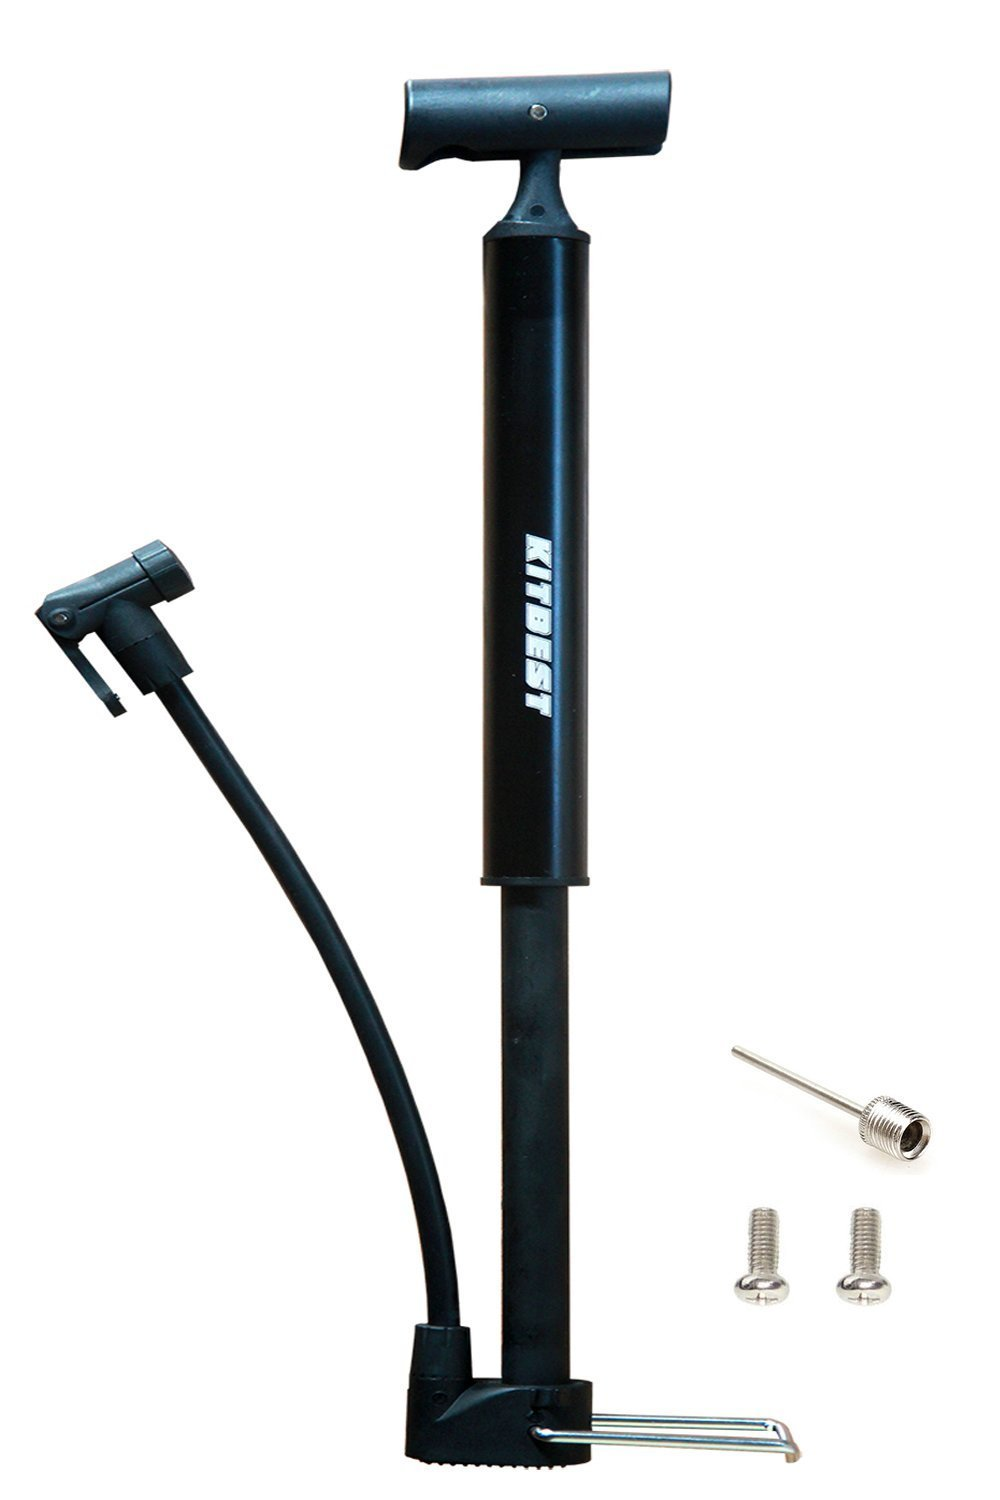 Kitbest Aluminium Alloy Portable Bike Floor Pump